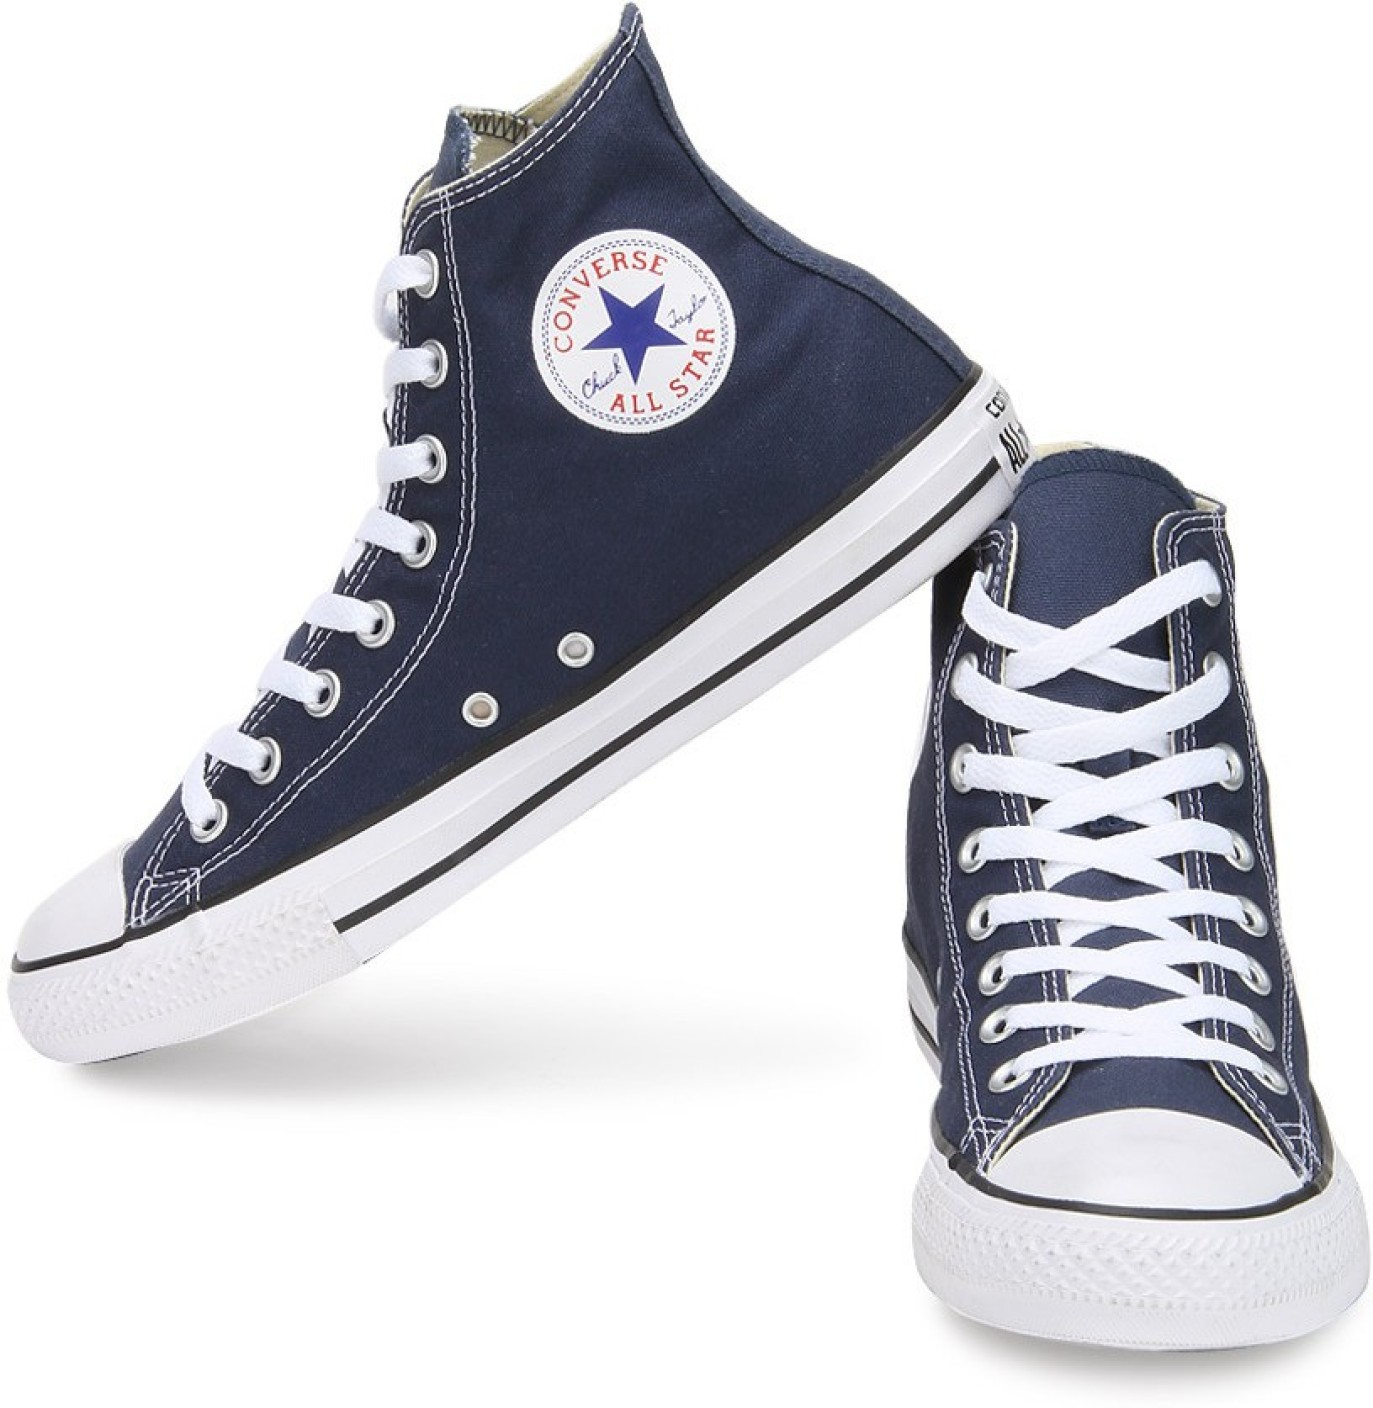 Converse Shoes All Star Price In India